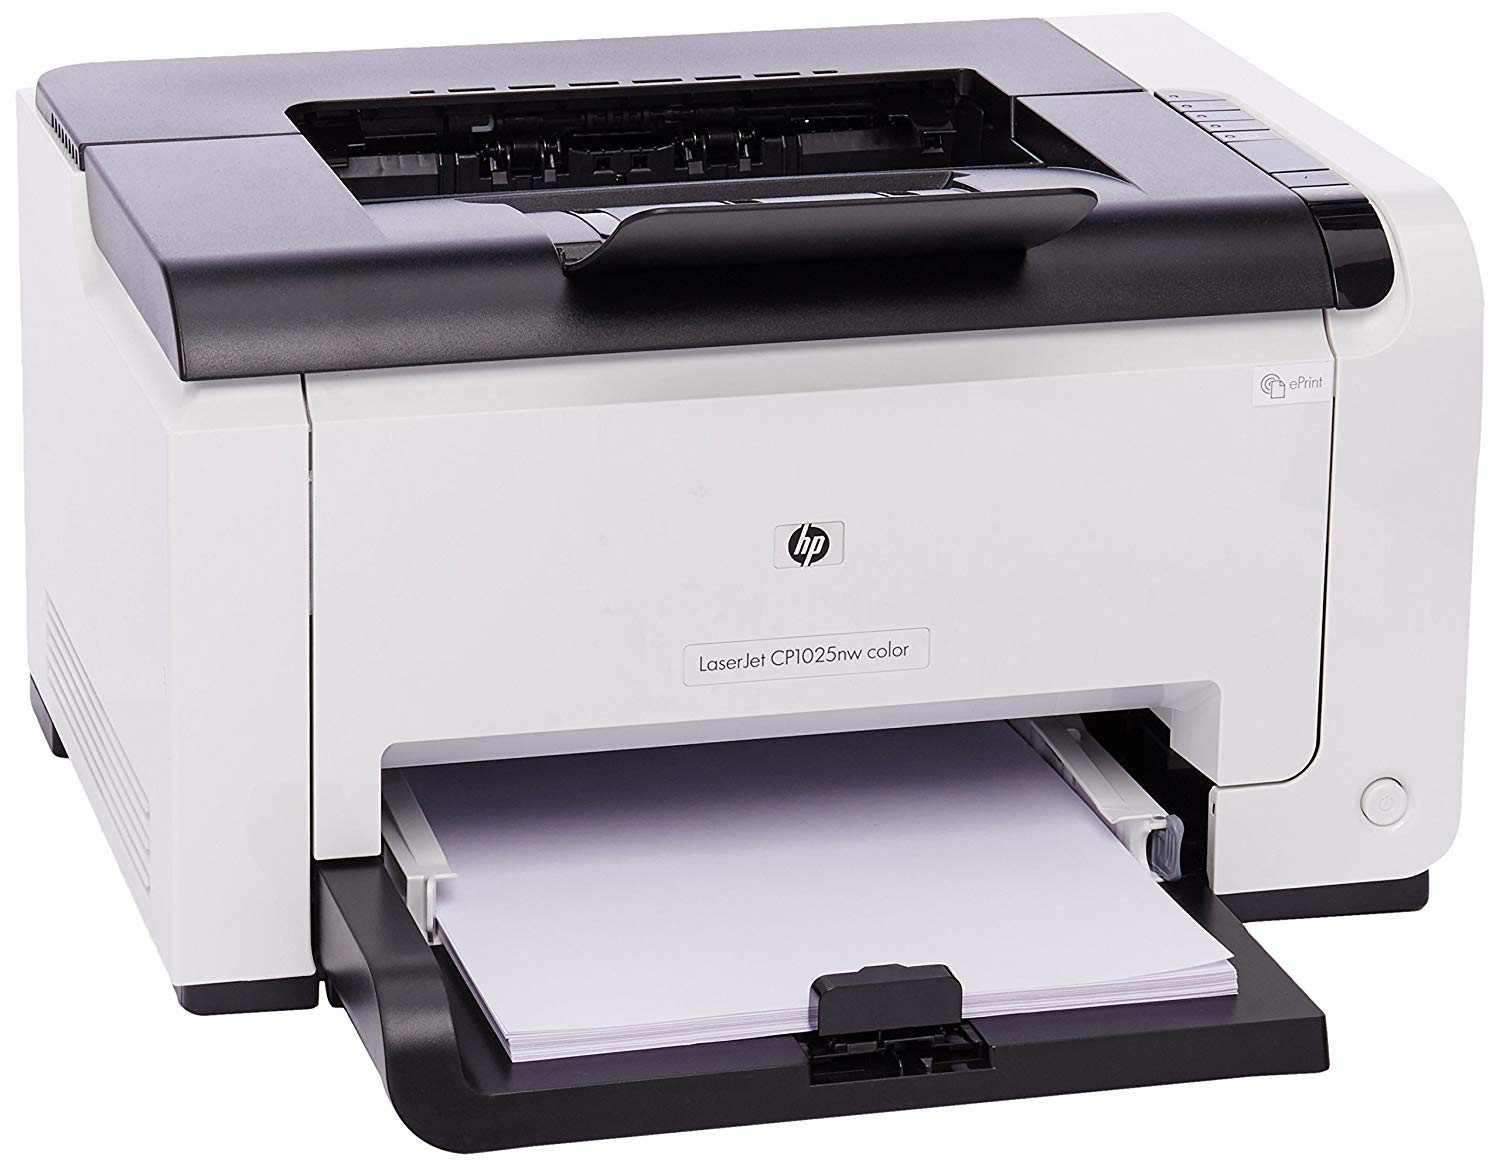 HP LaserJet Pro Color Printer